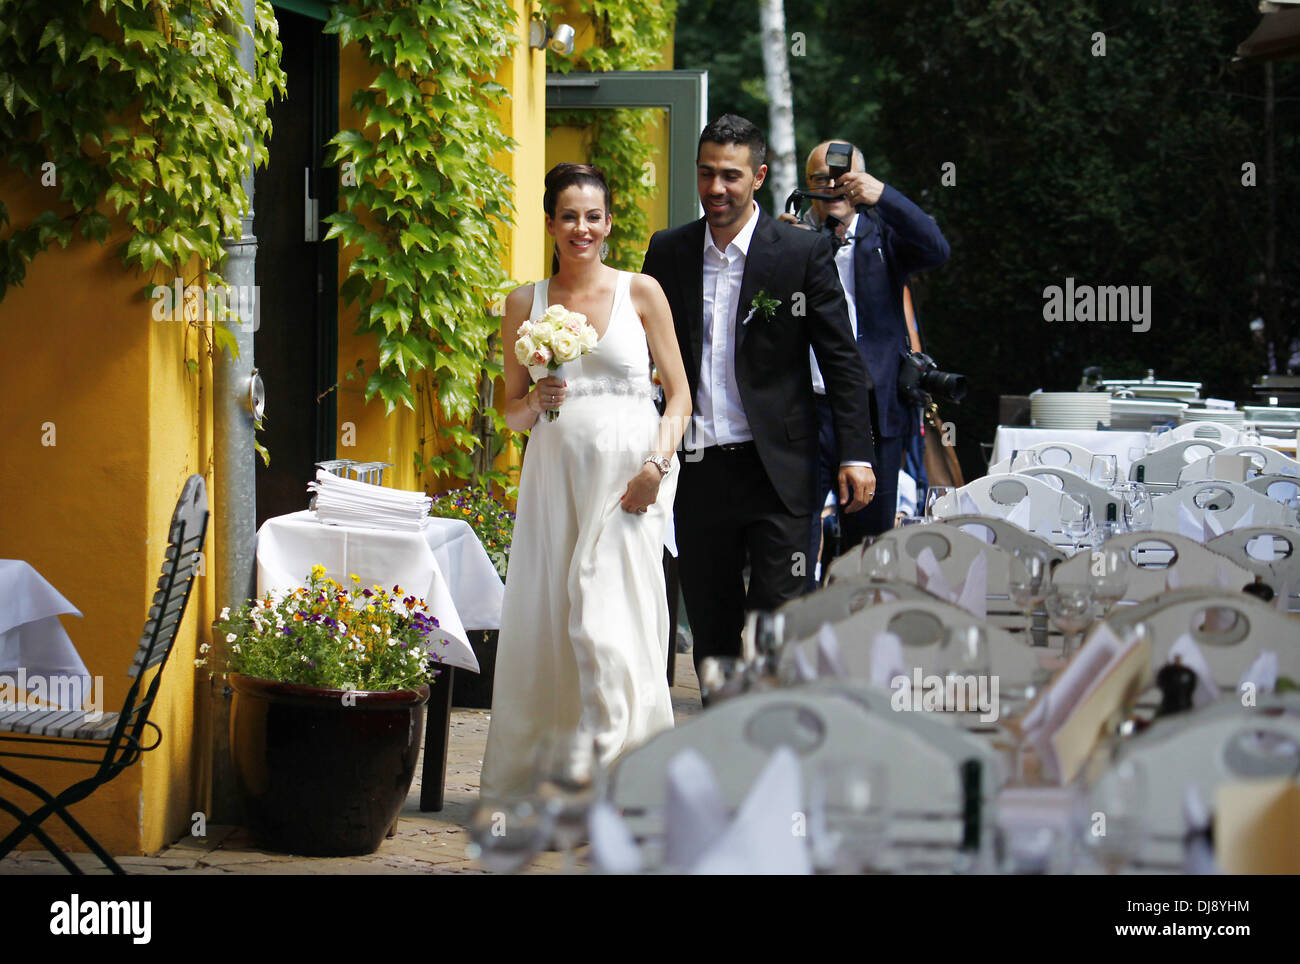 Anna Maria Lagerblom And Bushido Celebrate Their Wedding At Stock